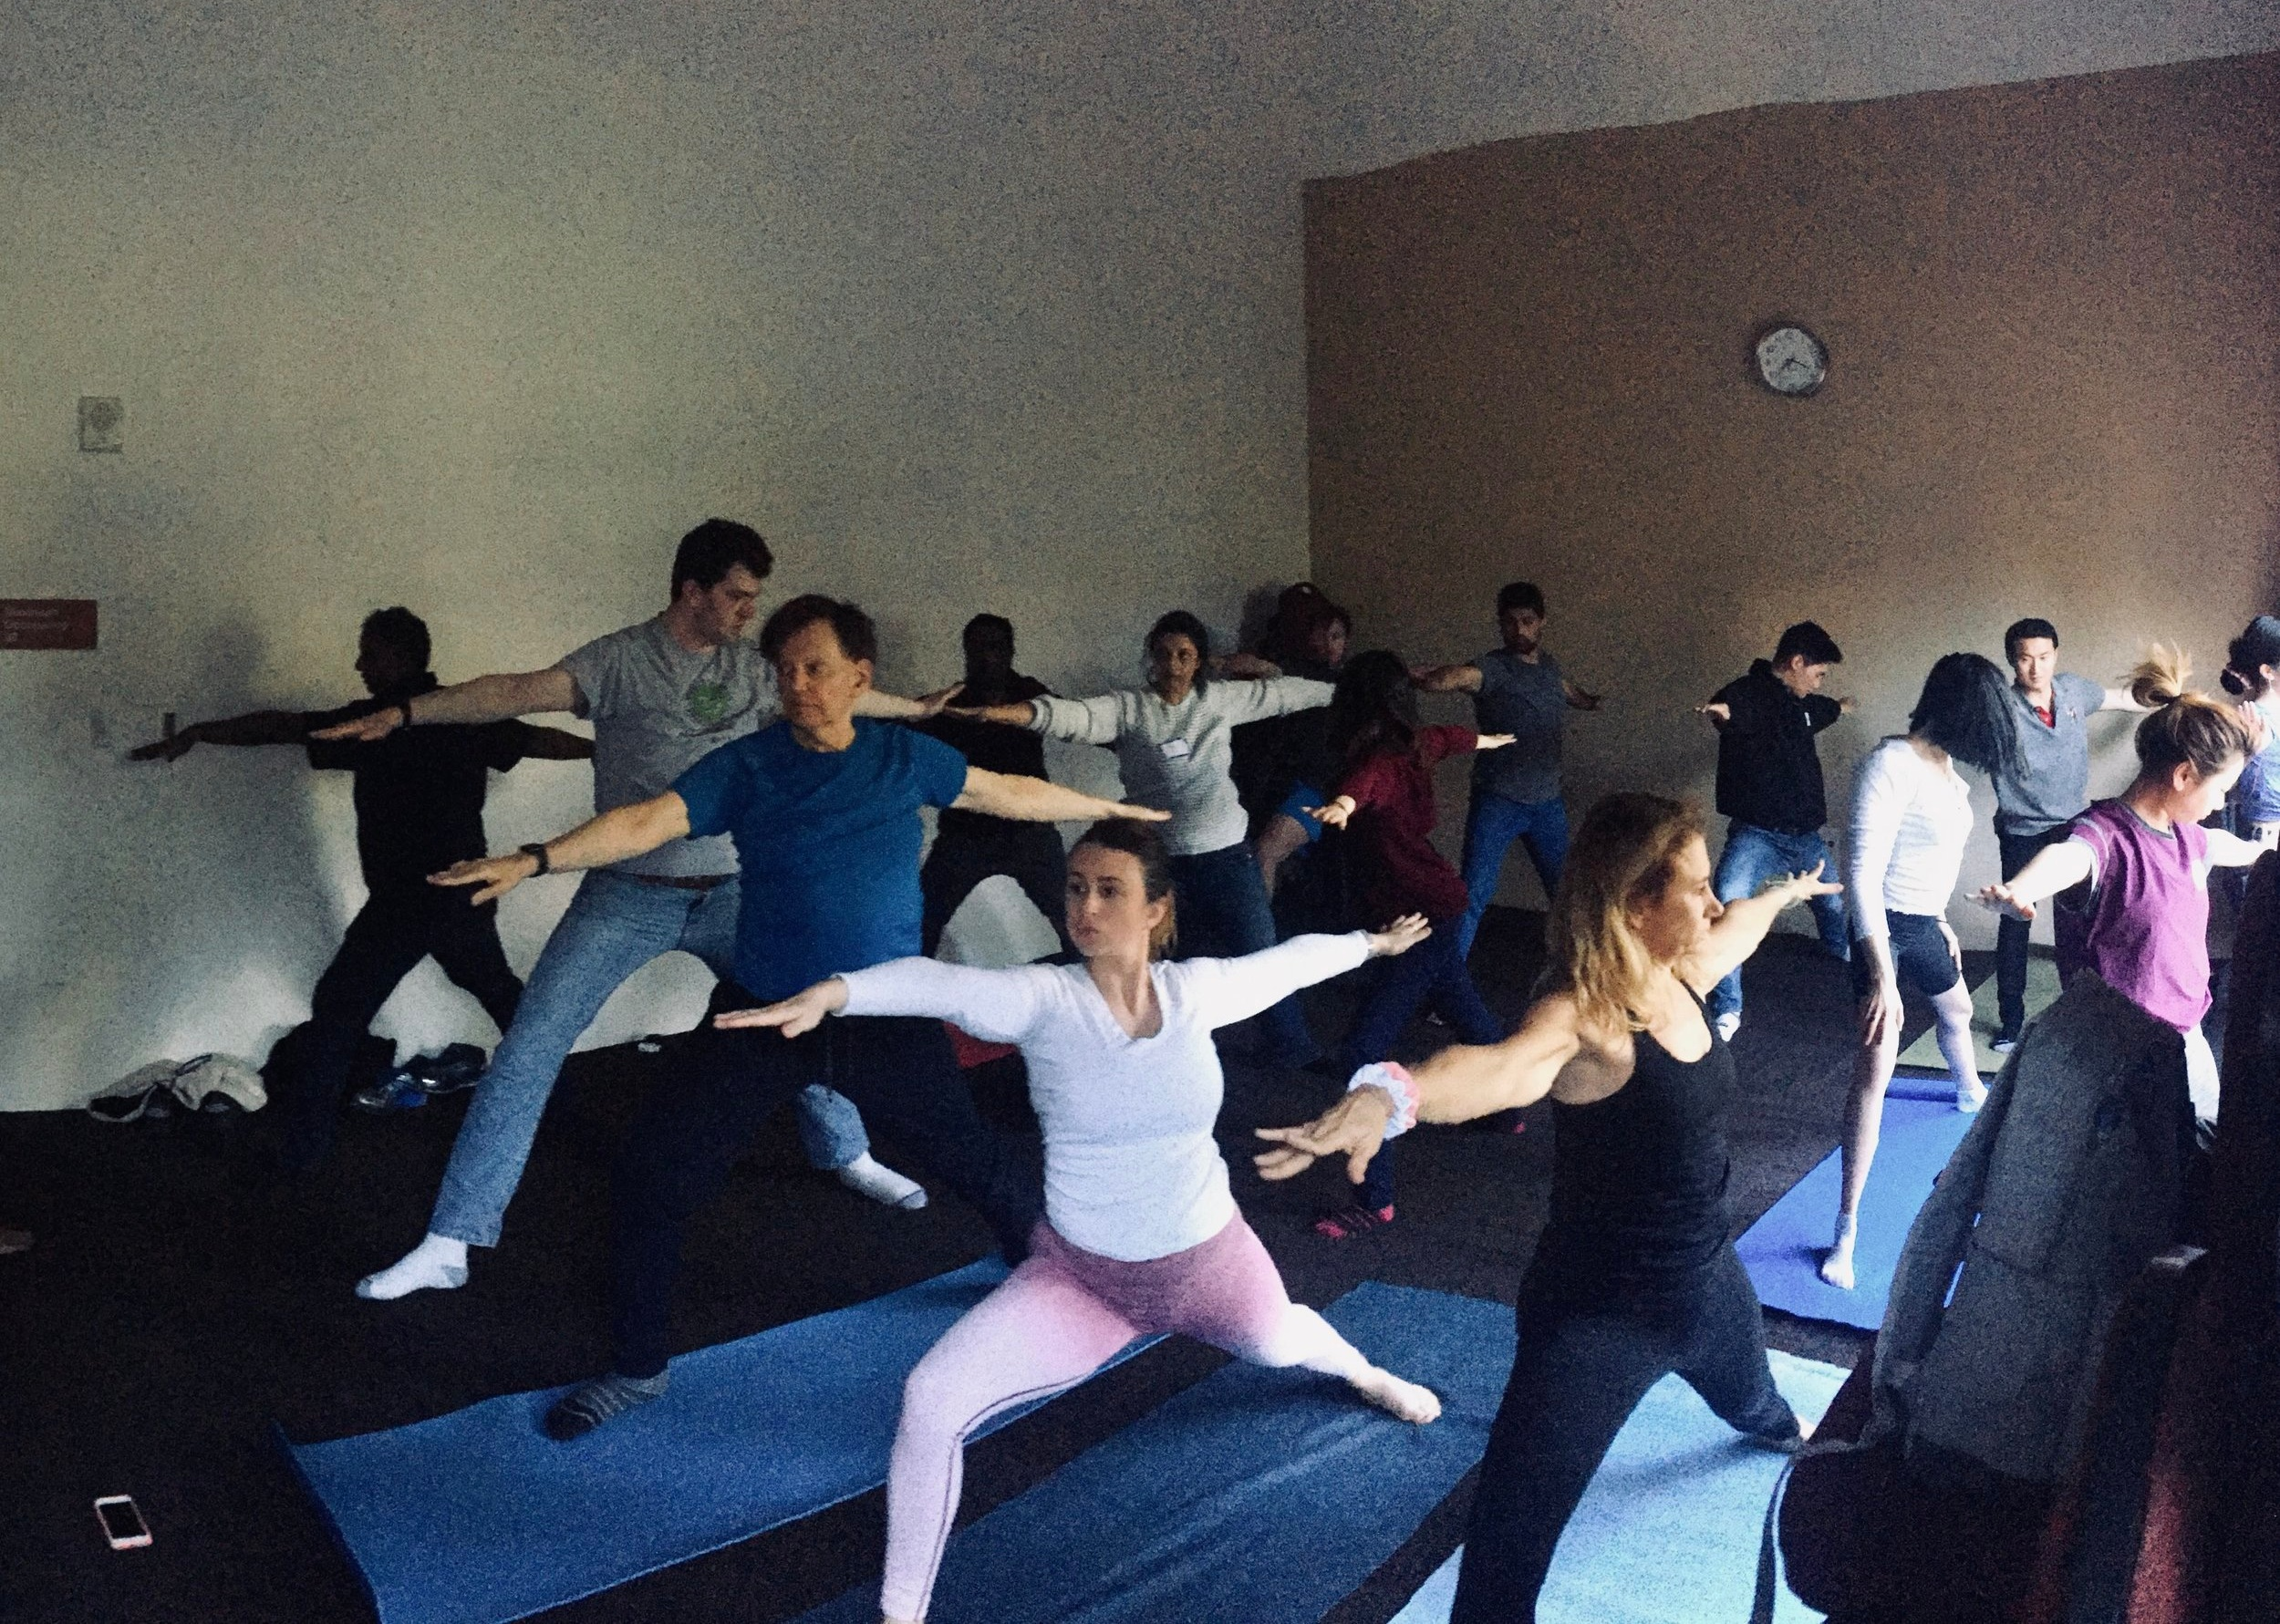 One of our mind+body focused activities offered during the hackathon: 30 min yoga workshops